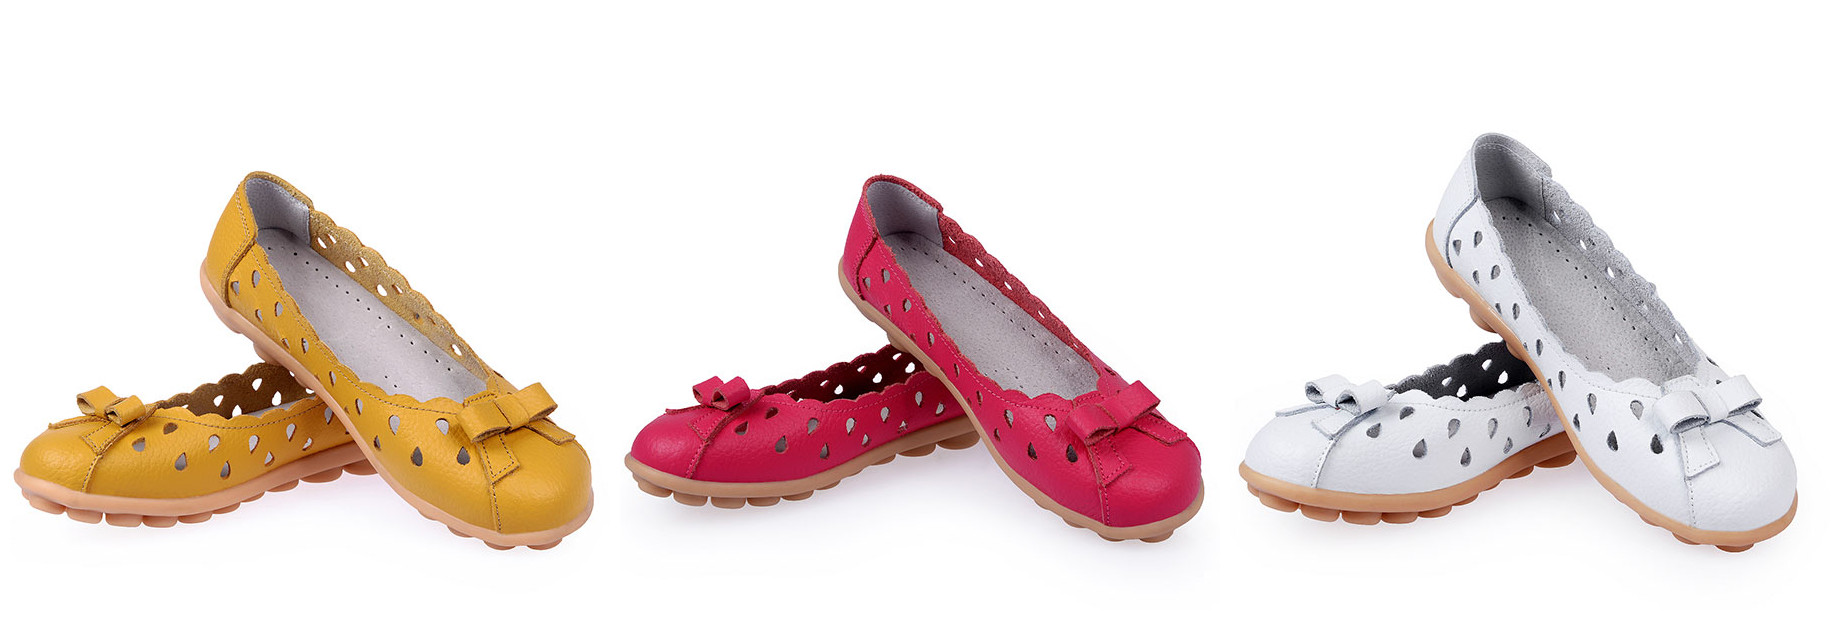 Women's flat flip-on shoes